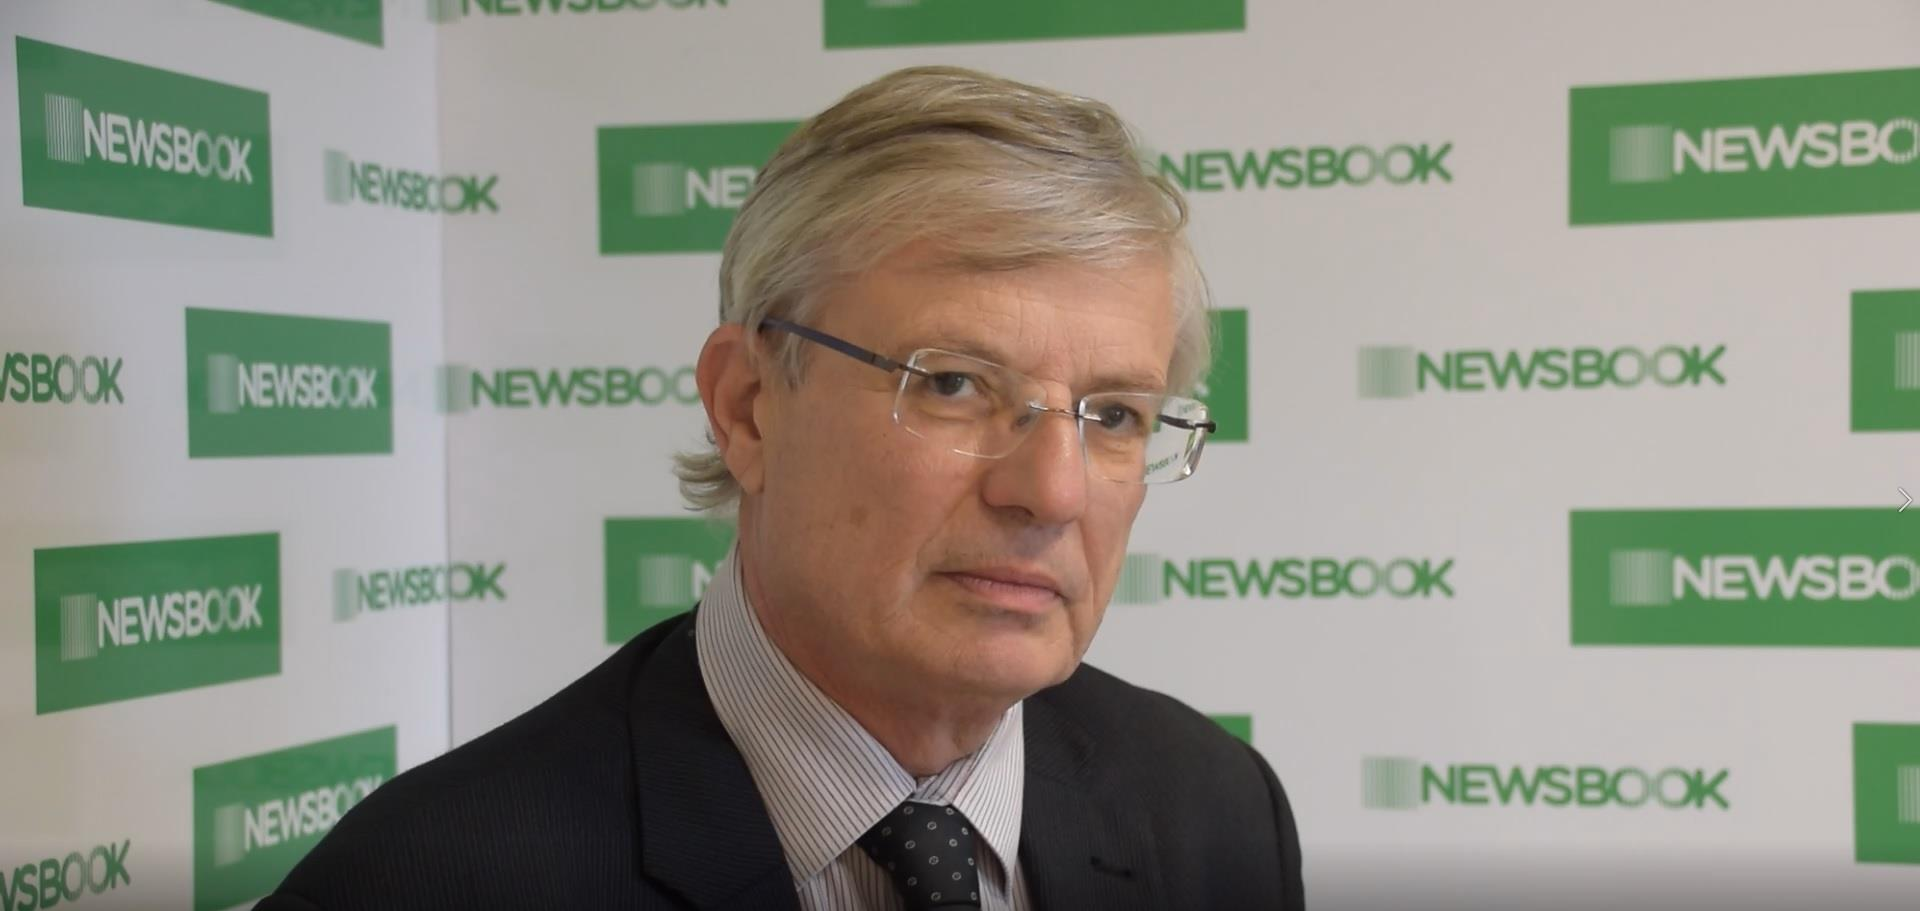 Watch: Those who speak of the 'second republic' want to leave their mark - Tonio Borg - Newsbook